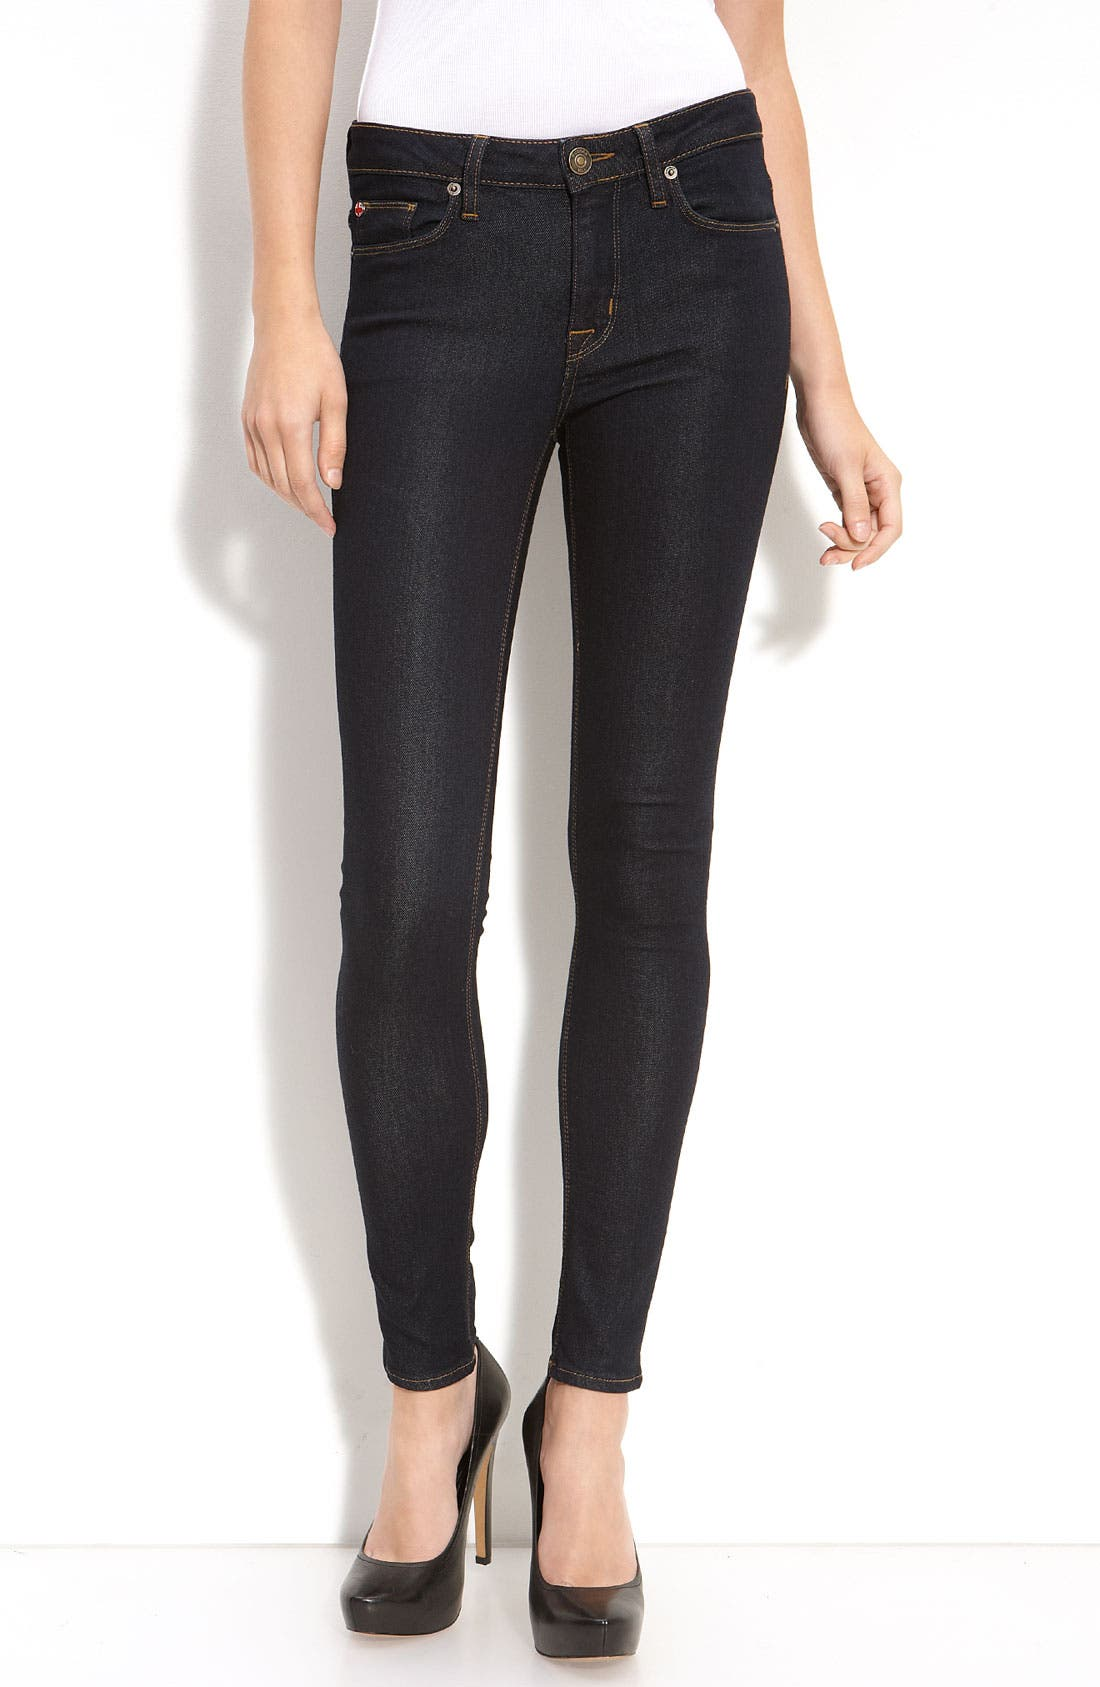 Main Image - Hudson Jeans 'Nico' Mid Rise Super Skinny Jeans (Chelsea)